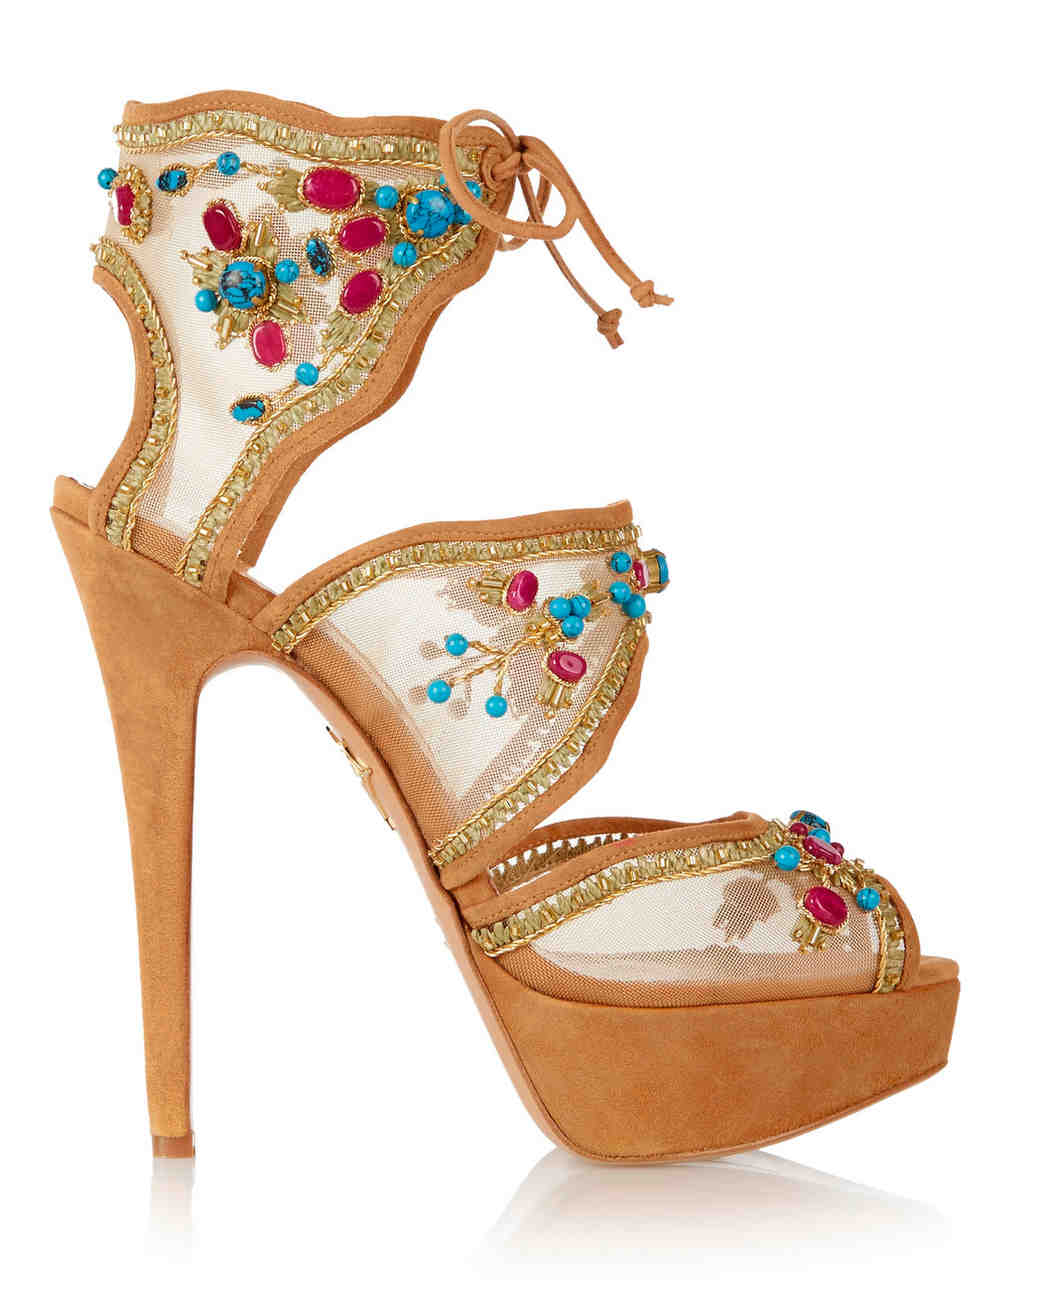 summer-wedding-shoes-charlotte-olympia-arizona-sandals-0515.jpg